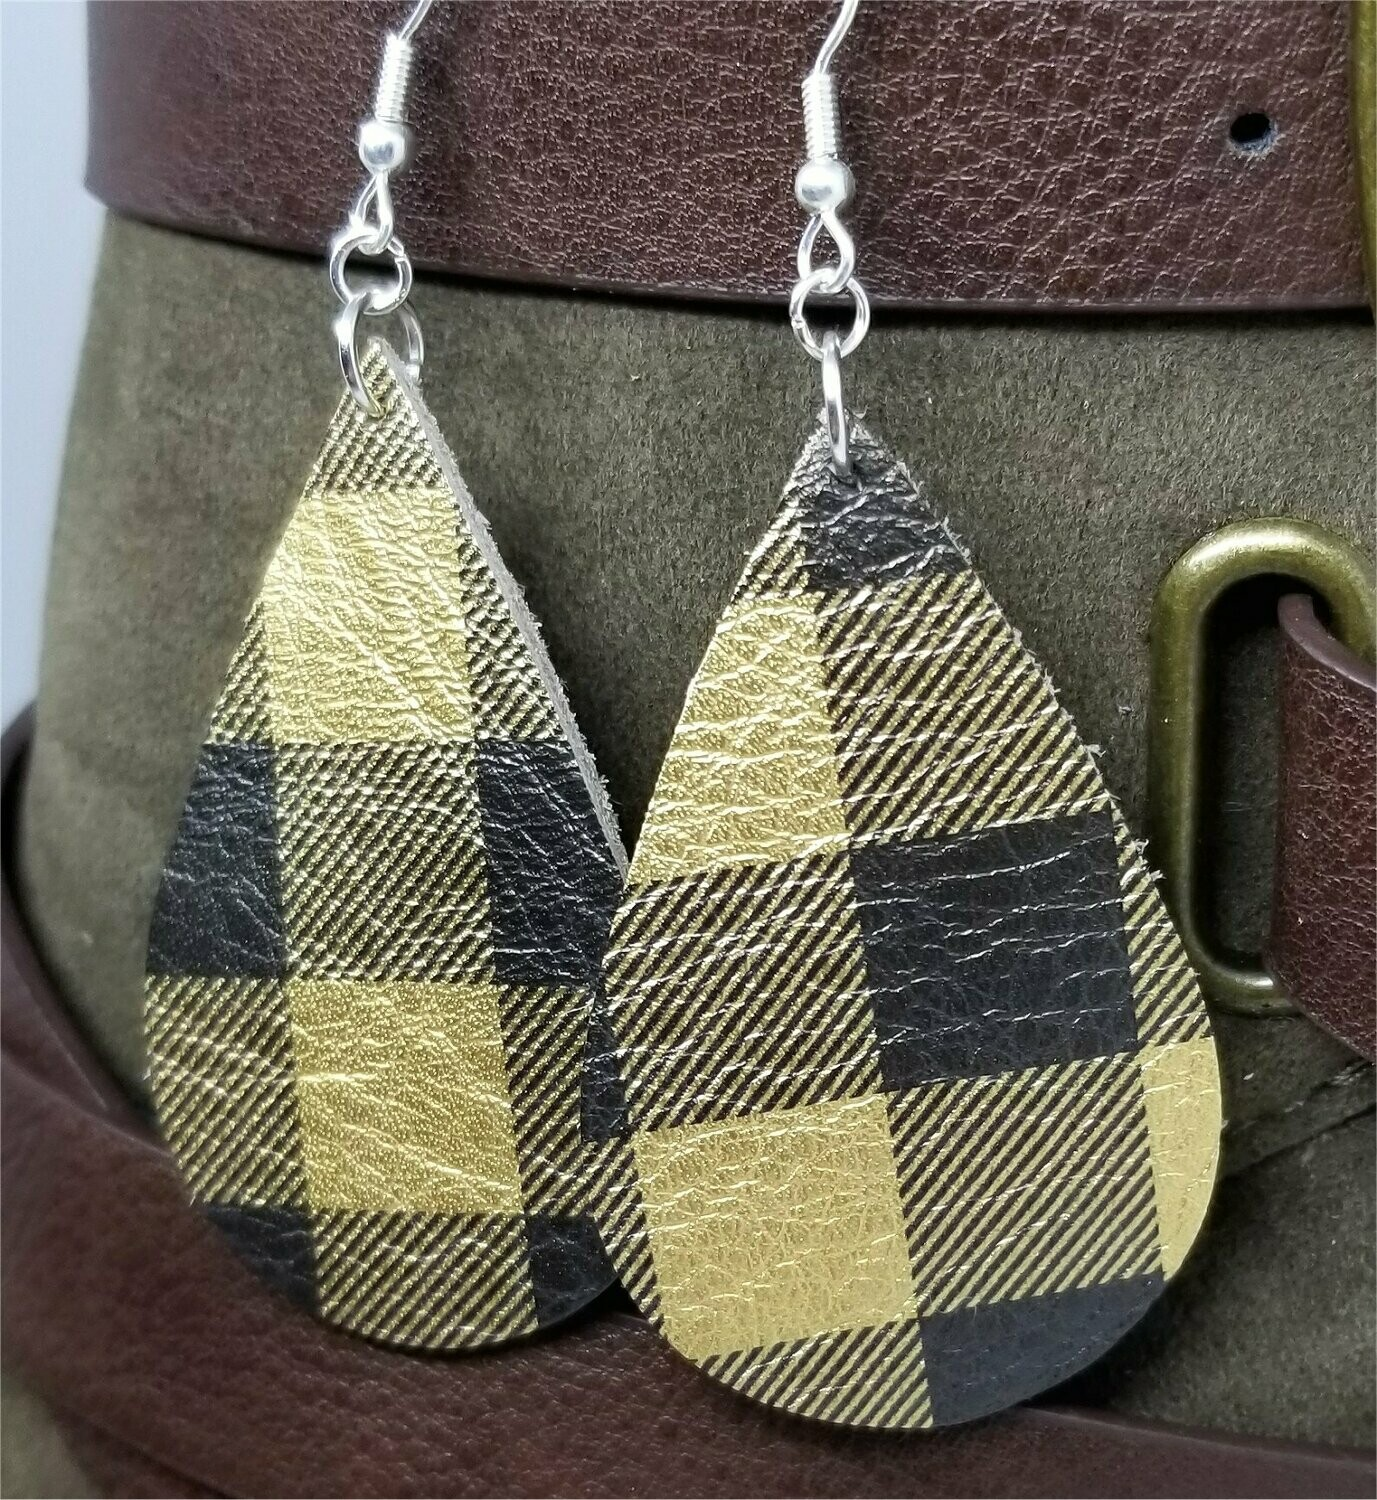 Black and Metallic Gold Plaid Teardrop Earrings with Surgical Steel Earwires